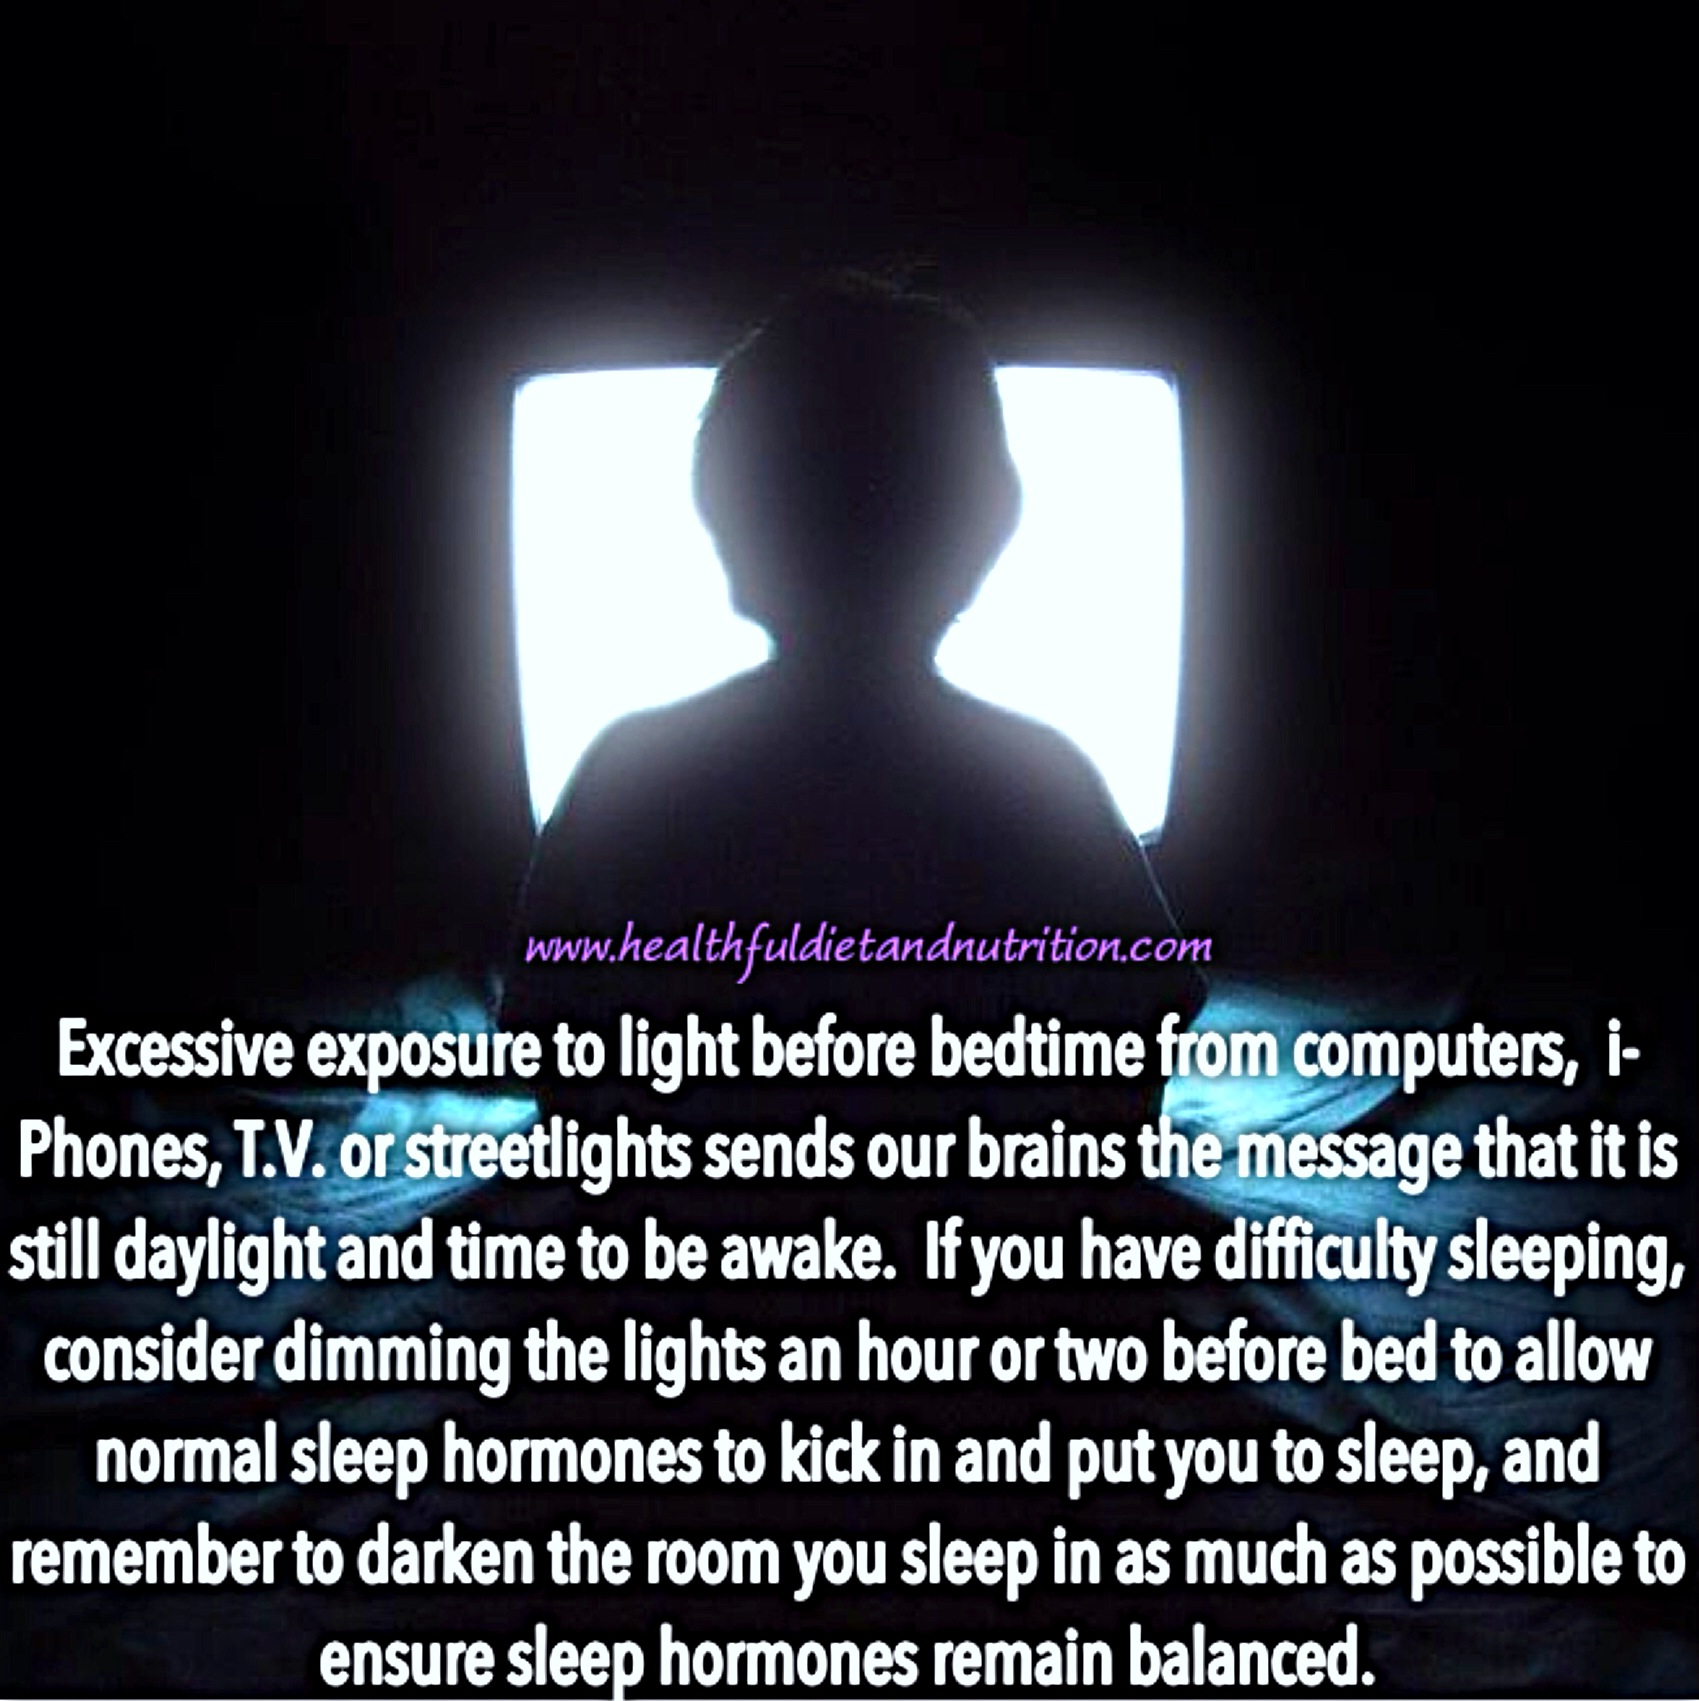 Limit Exposure To Light Before Bedtime